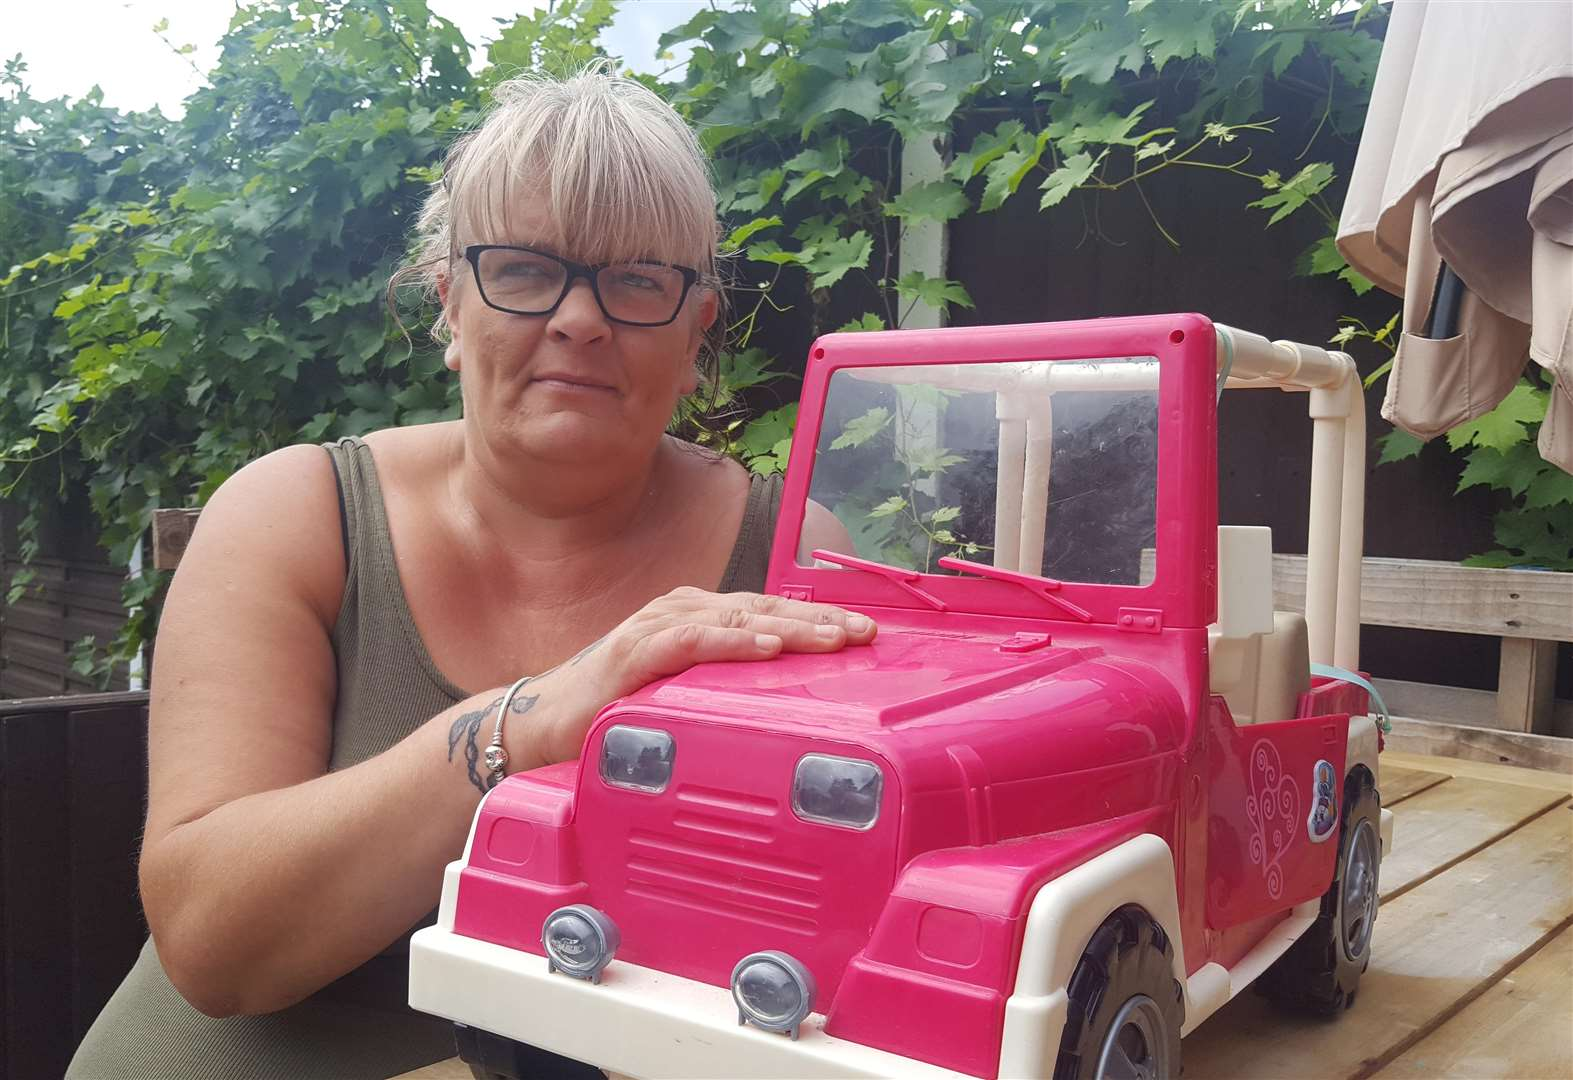 Mum fights off home intruders with toy car